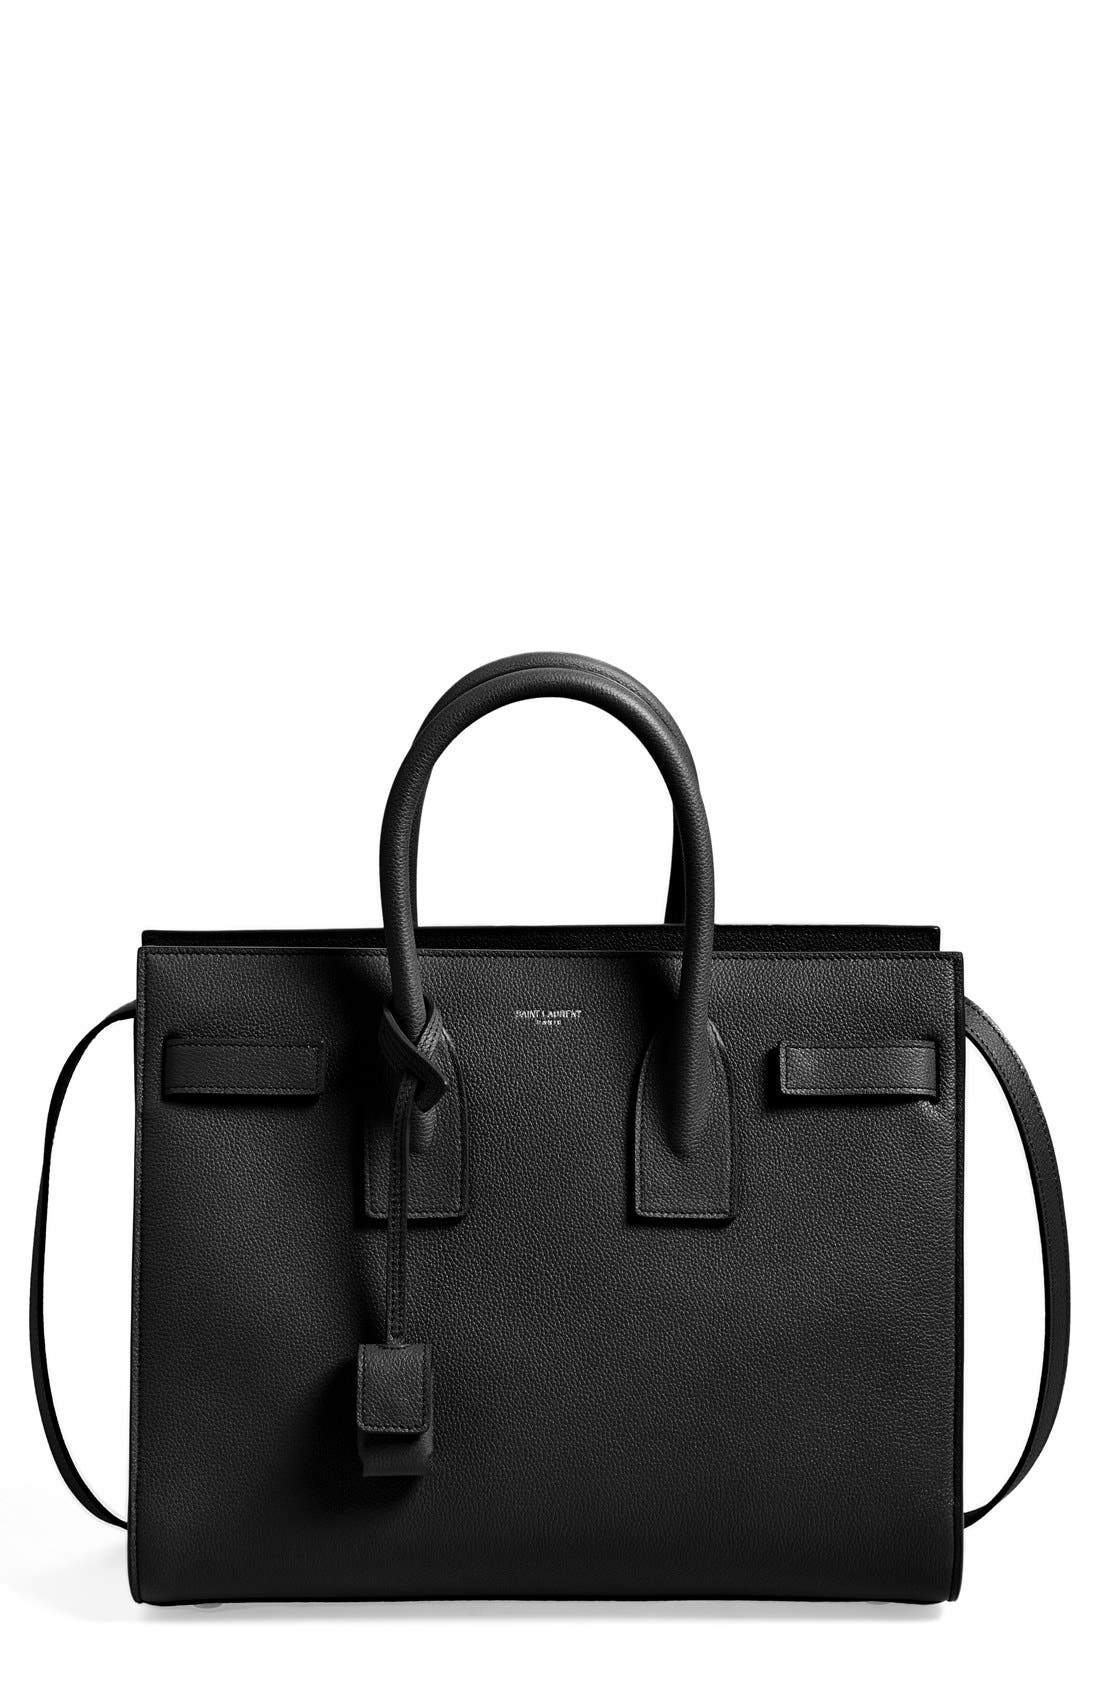 Saint Laurent 'Small Sac de Jour' Grained Leather Tote